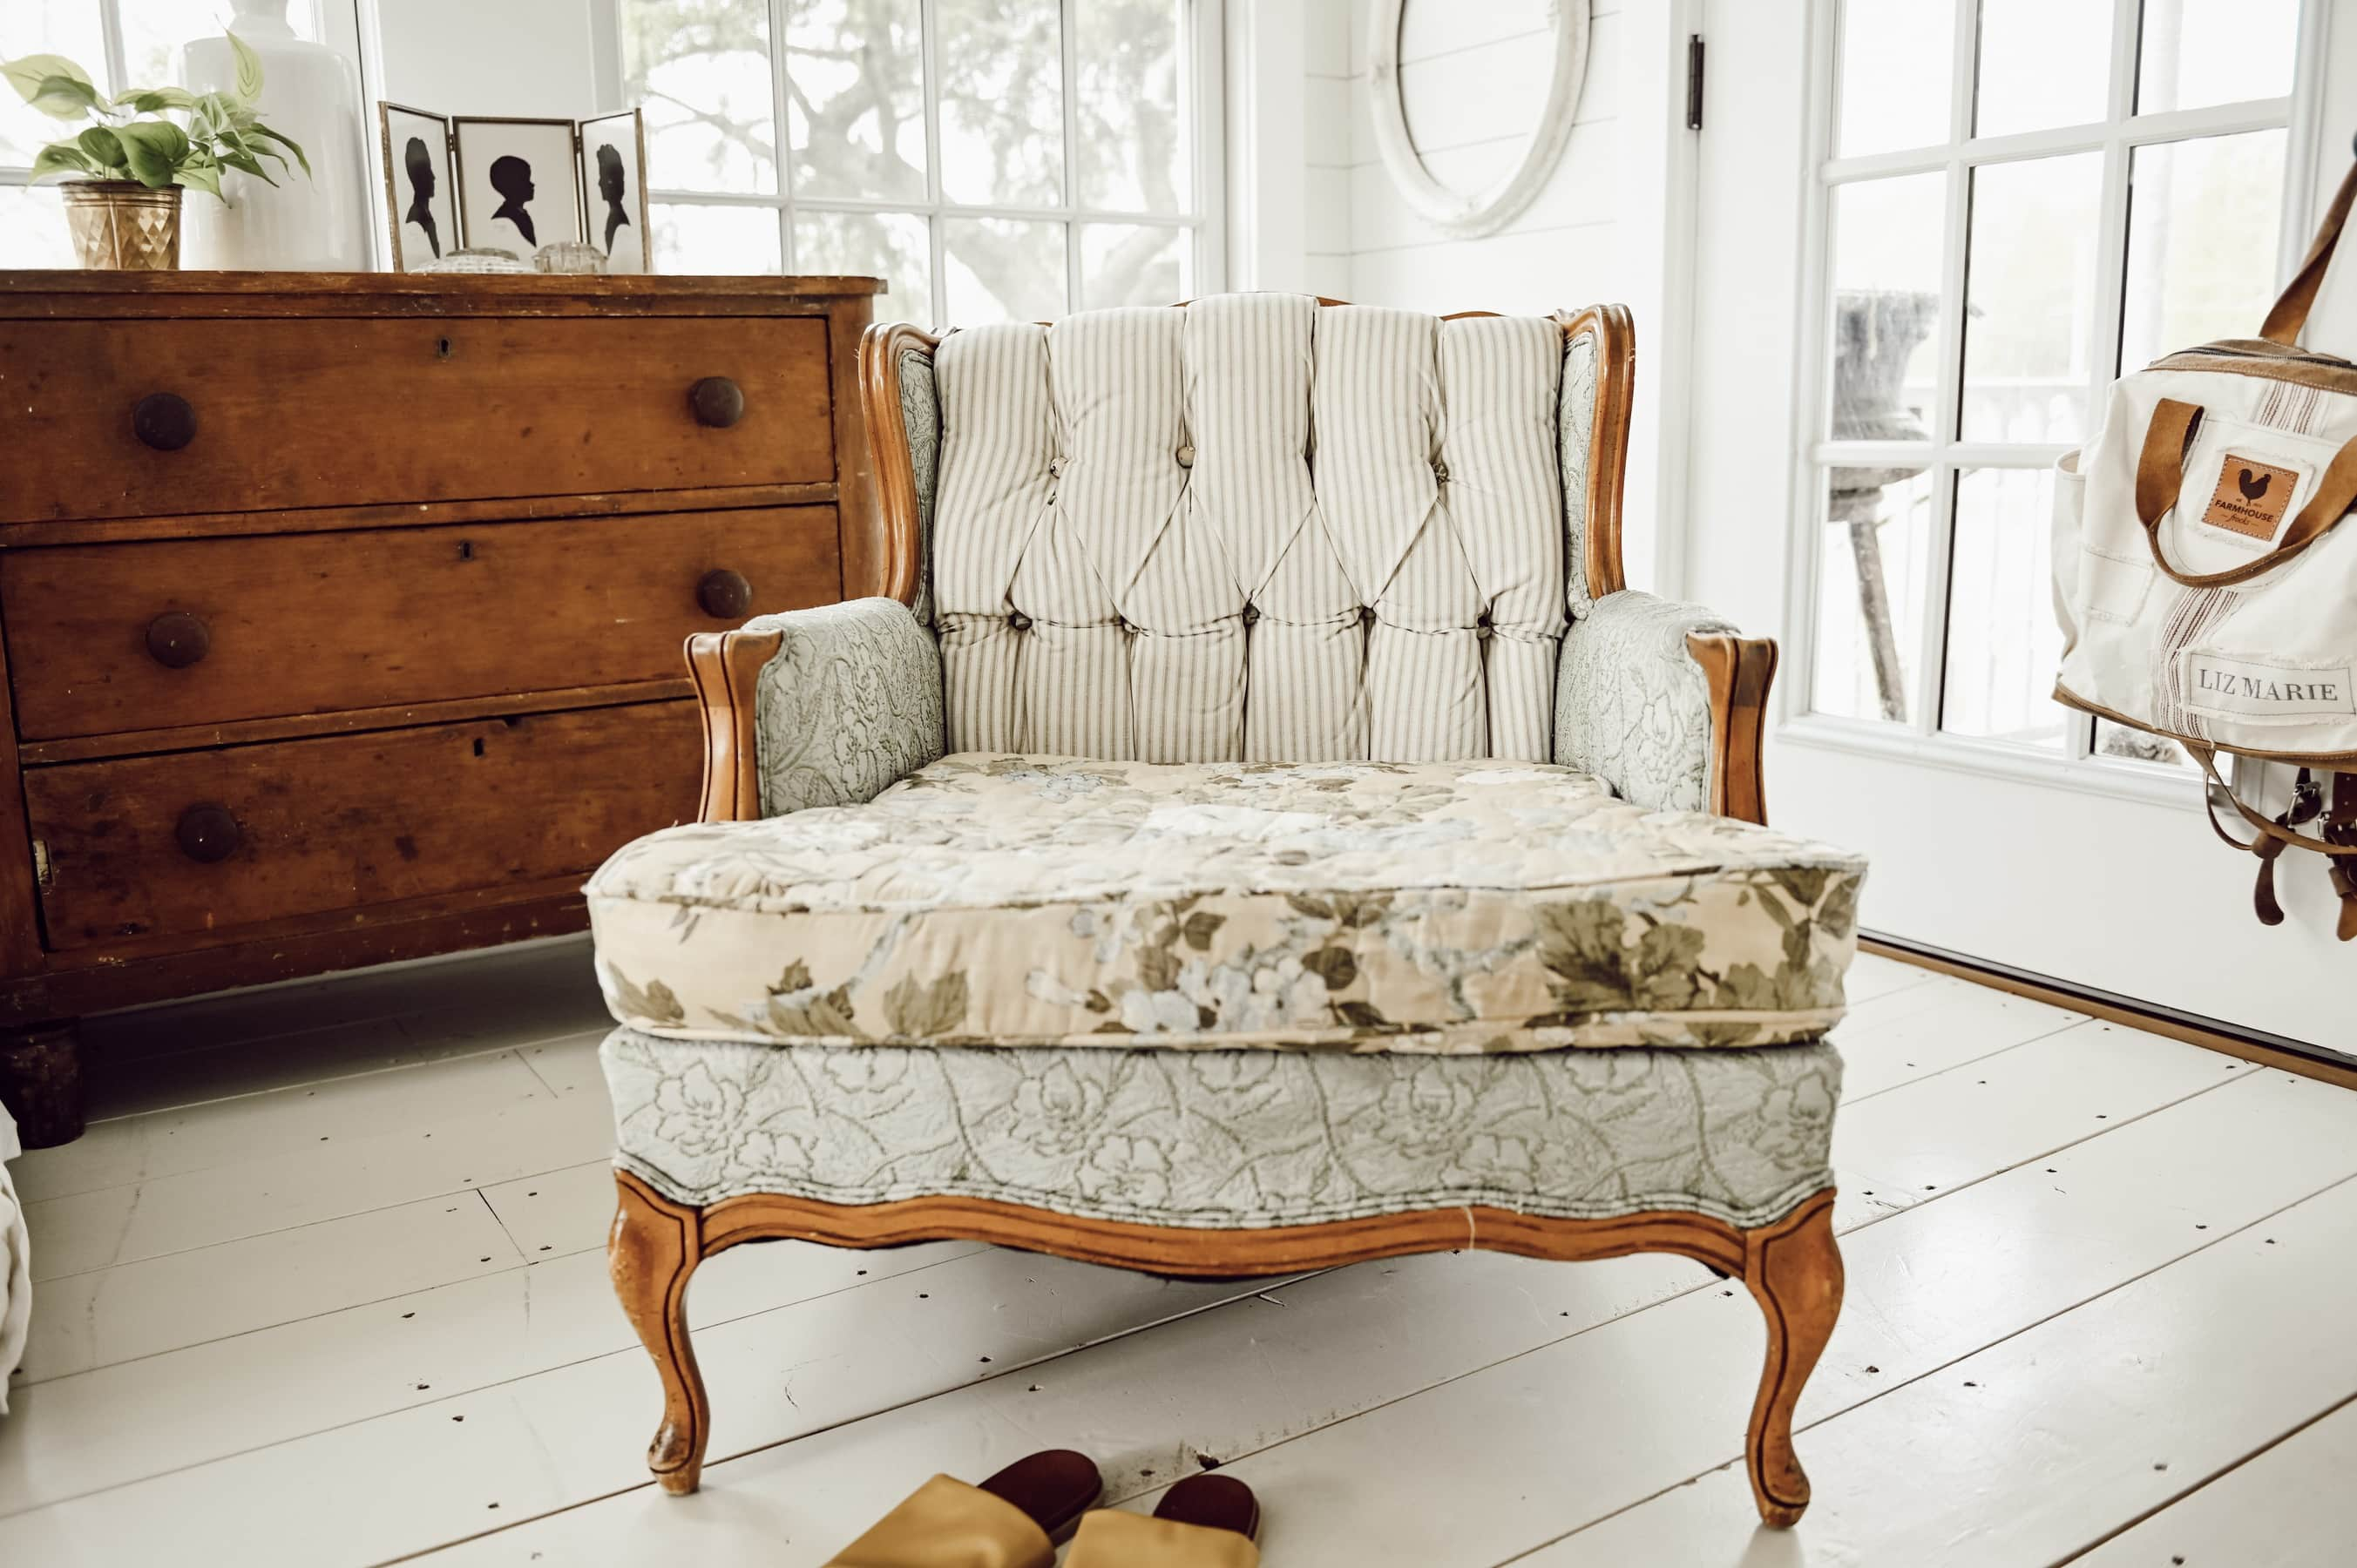 A New Cozy Vintage Chair